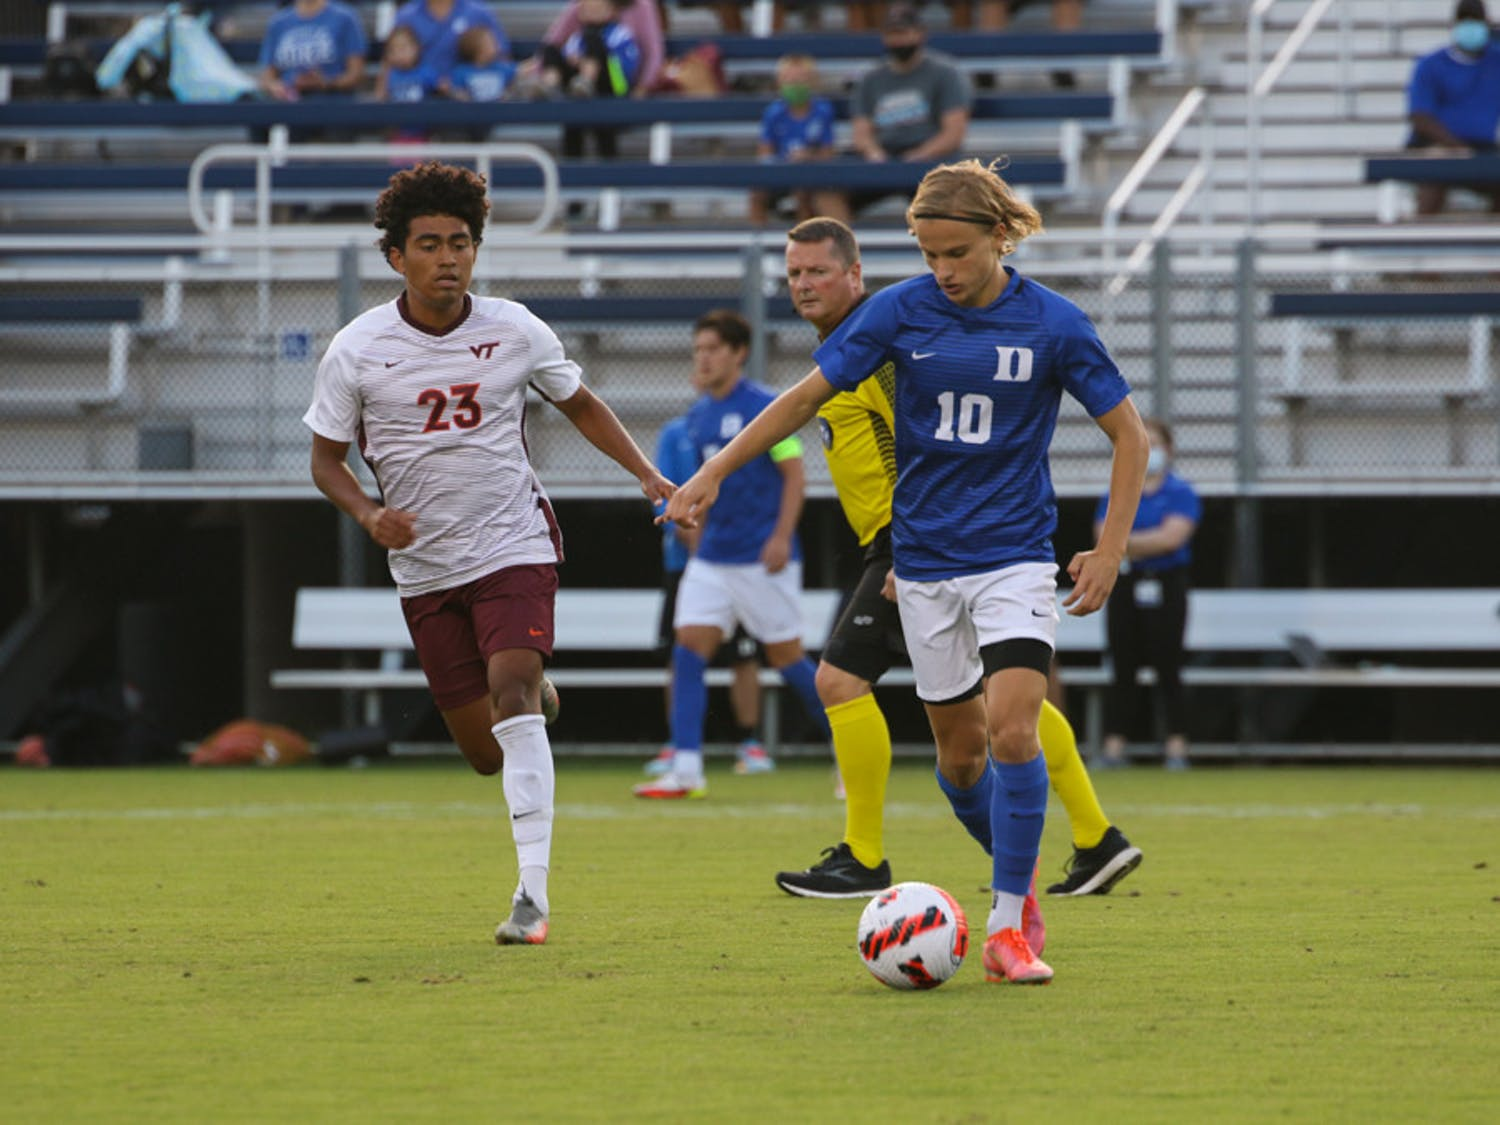 Sophomore Nick Pariano netted a penalty kick goal in the 39th minute.